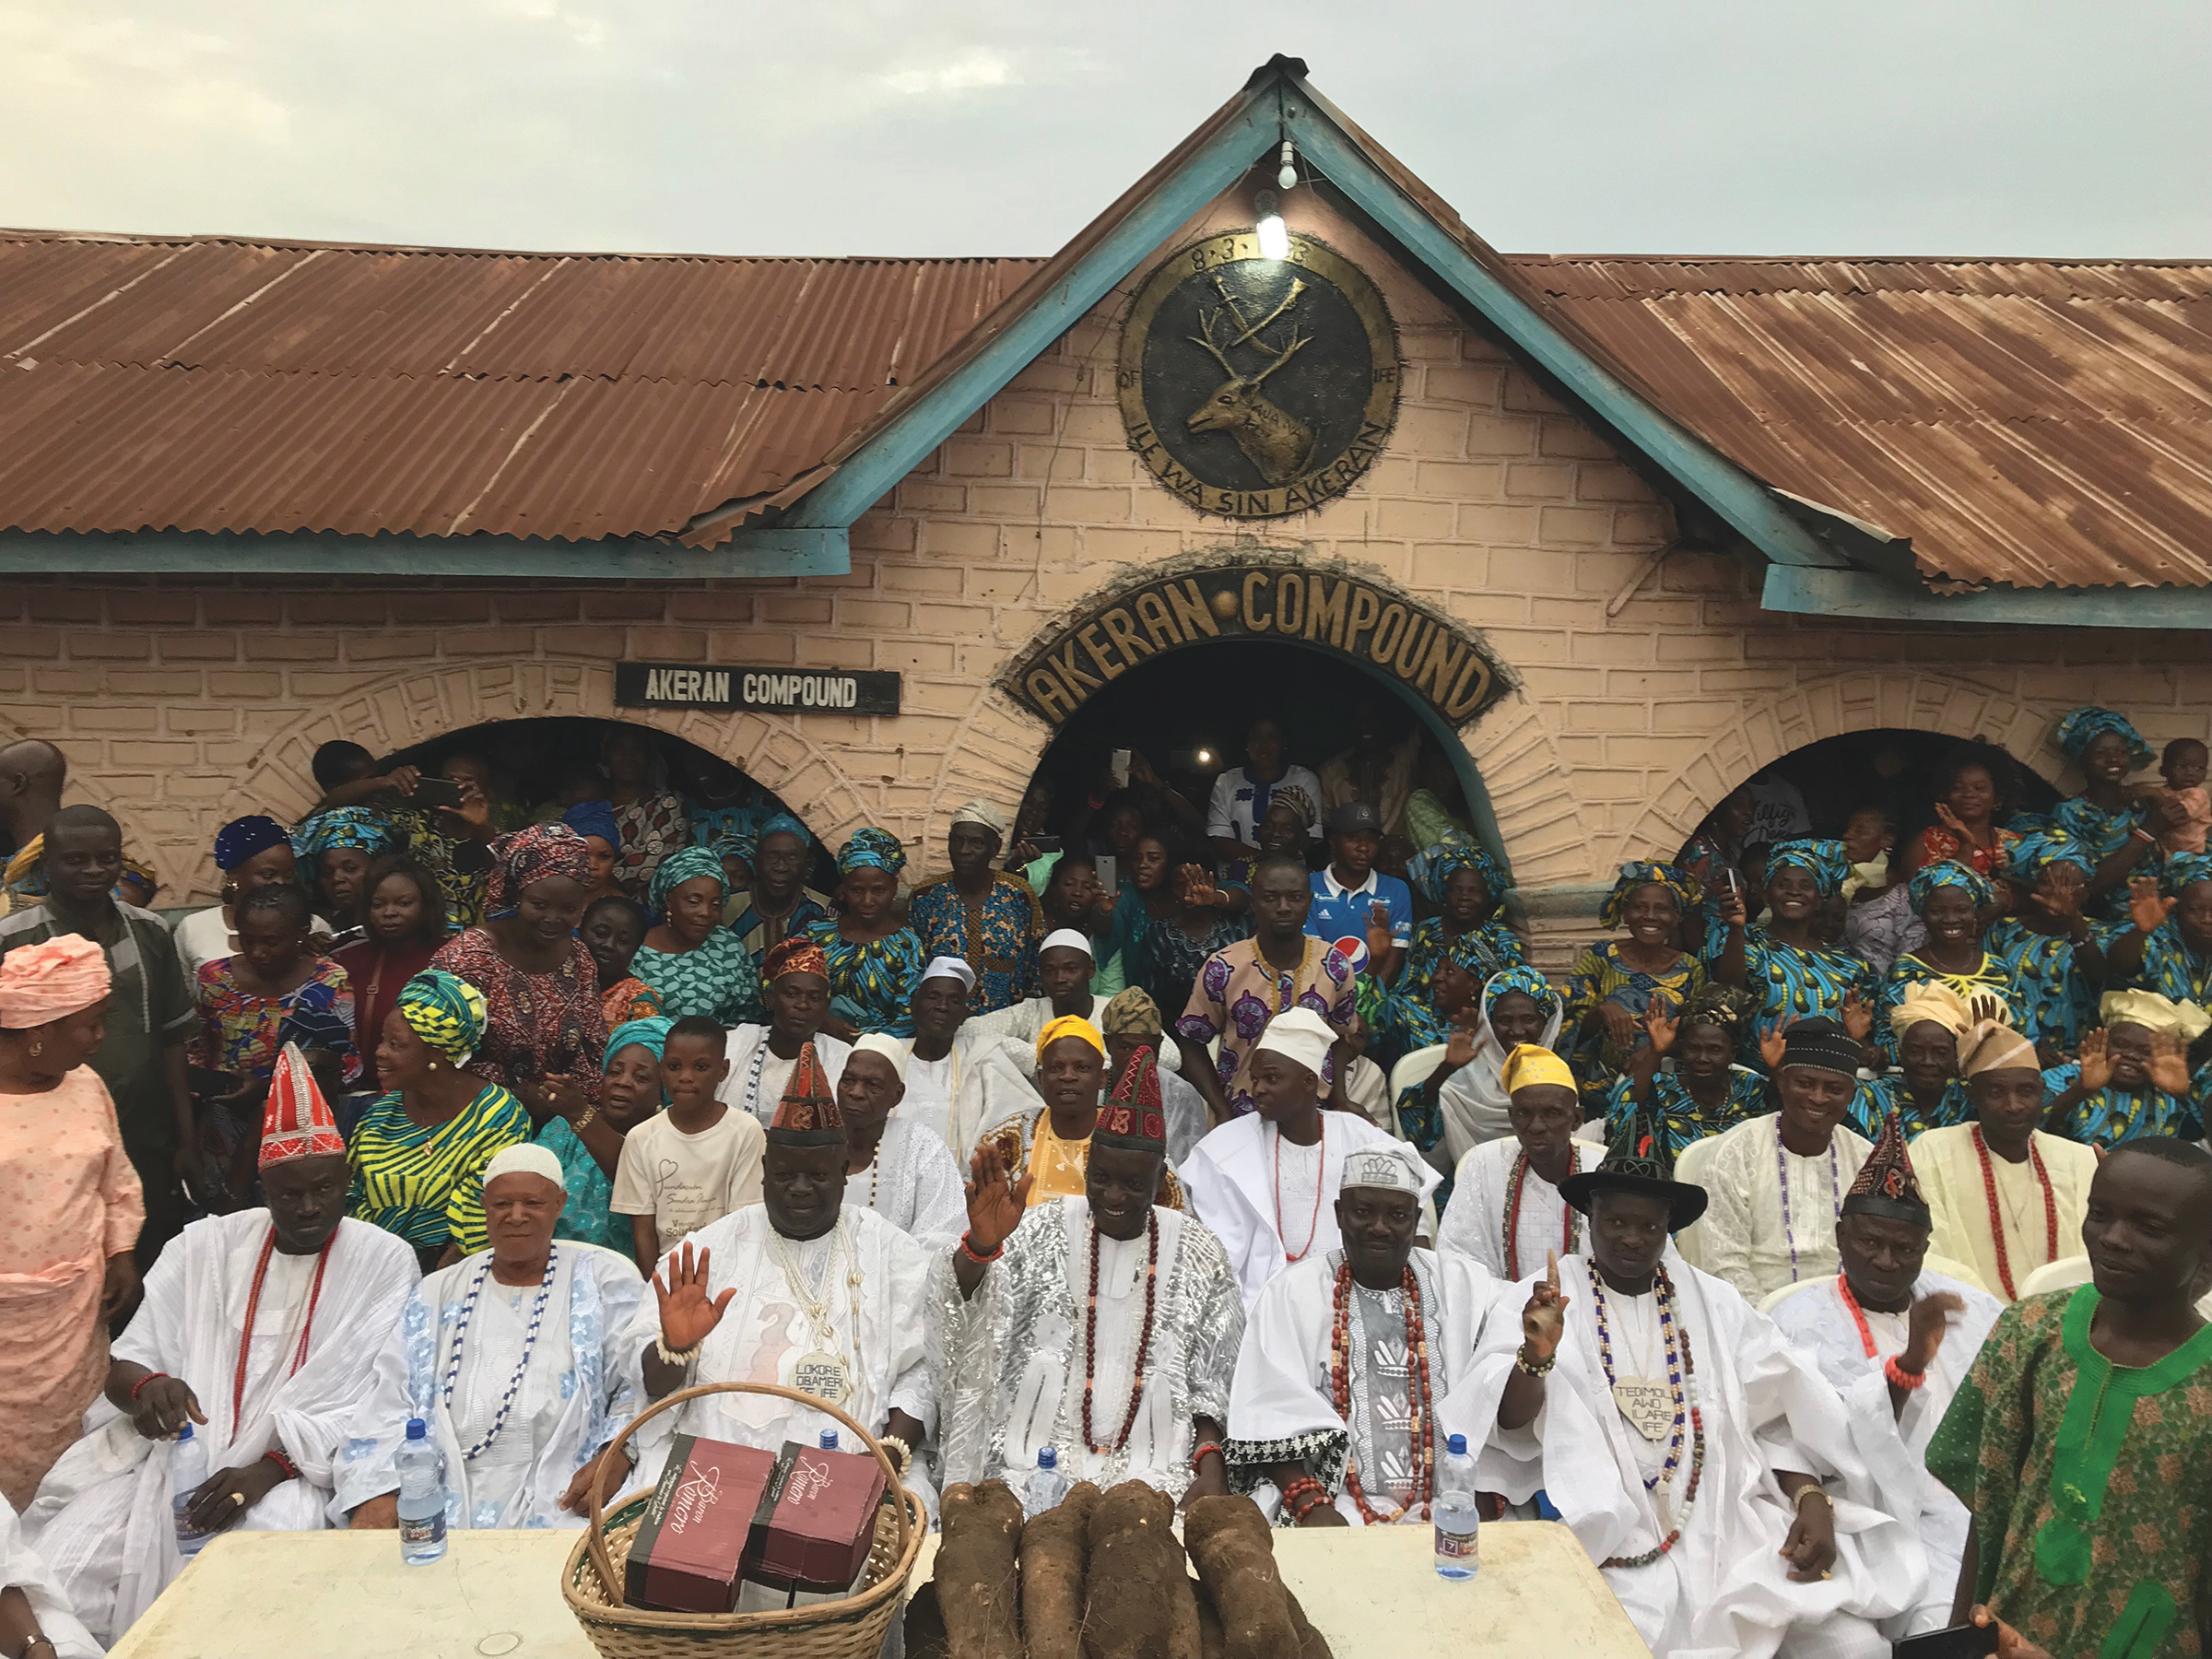 The Olojo Festival is celebrated annually as the spiritual confirmation that God created the world and deposited the elements of creation in Ile-Ife.